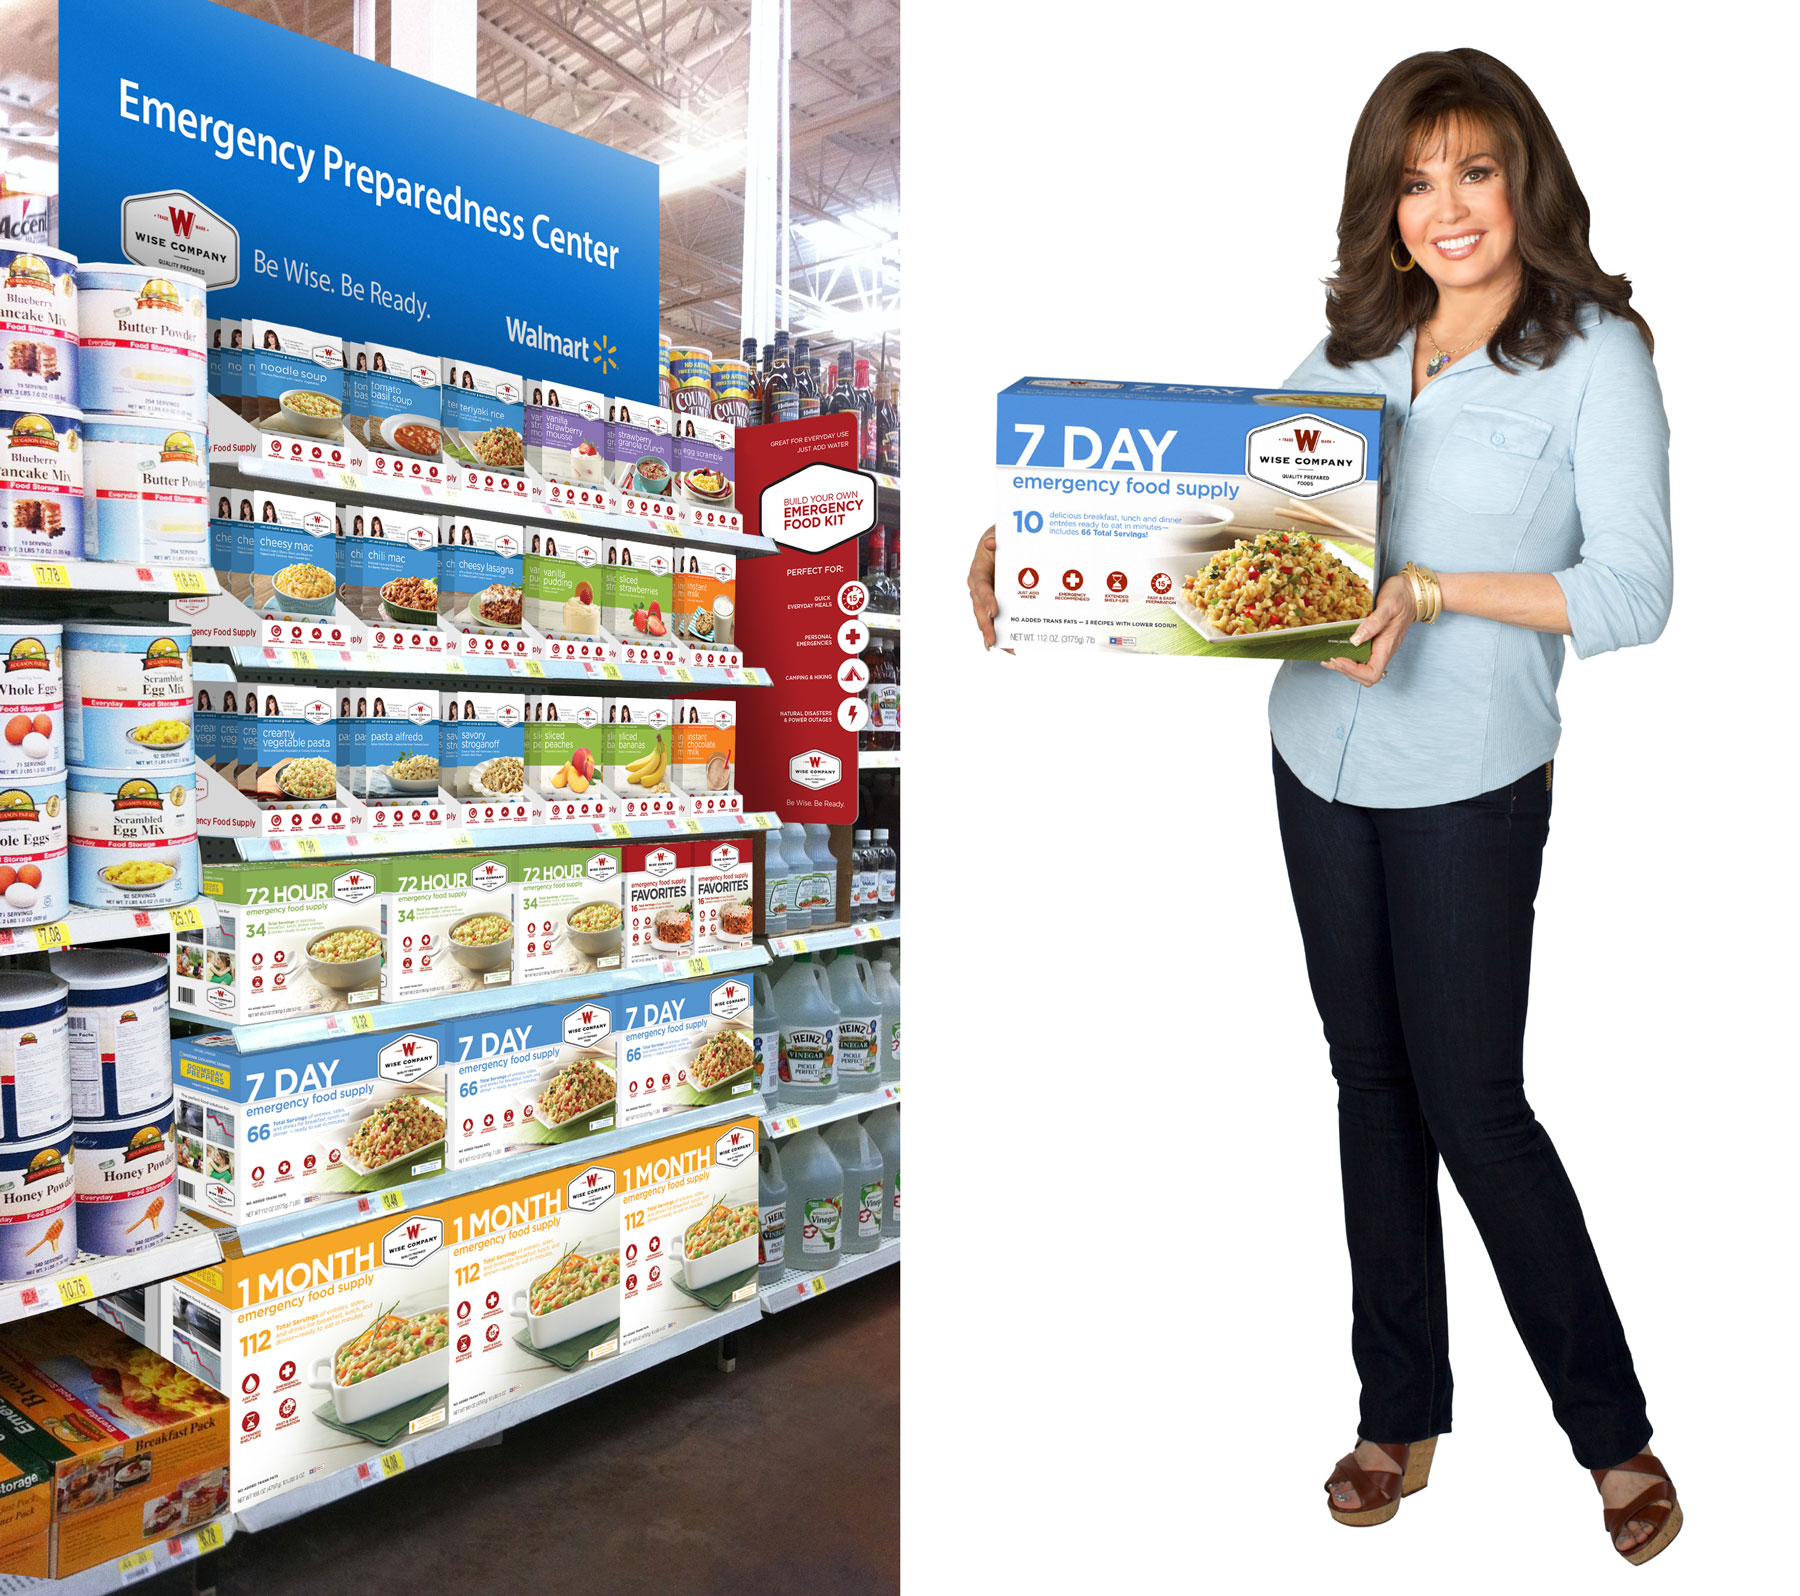 Products on store shelves and Marie Osmond holding product packaging